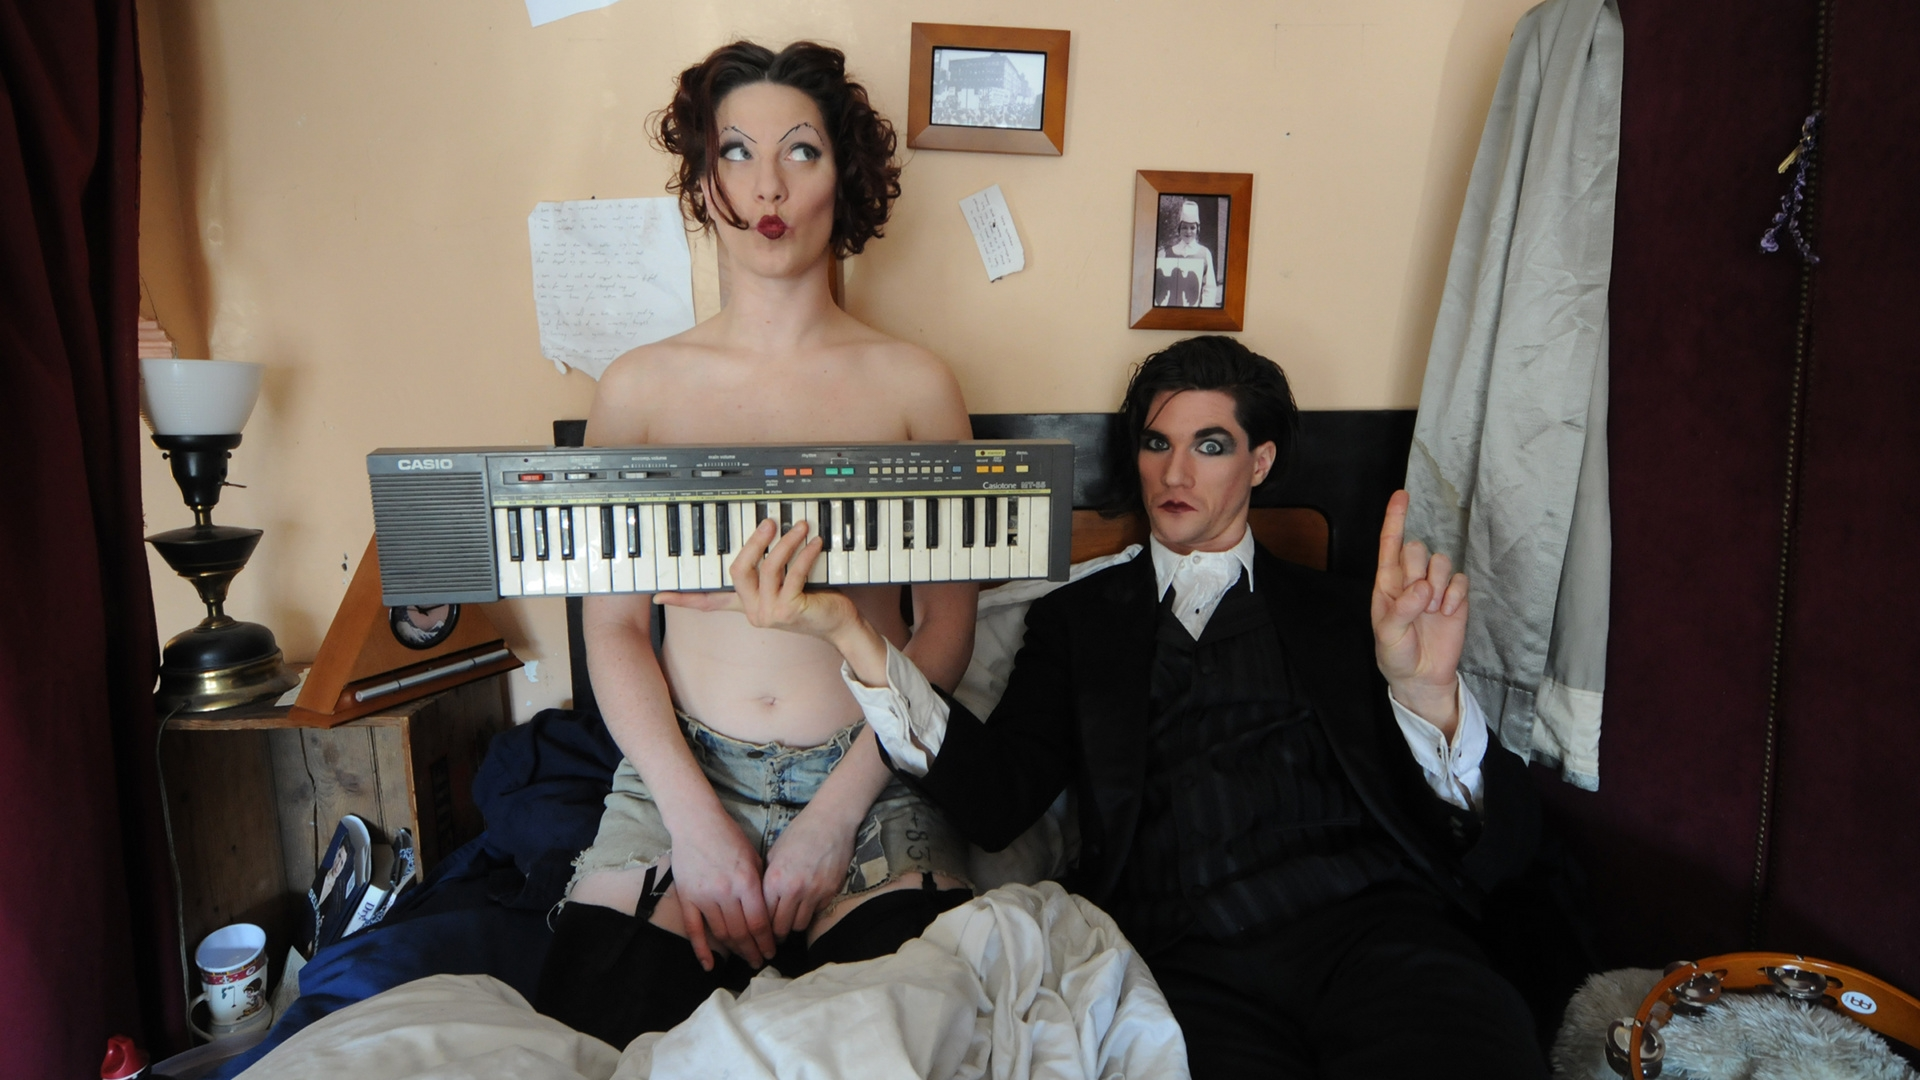 Download Wallpaper 1920x1080 The Dresden Dolls Girl Synthesizer